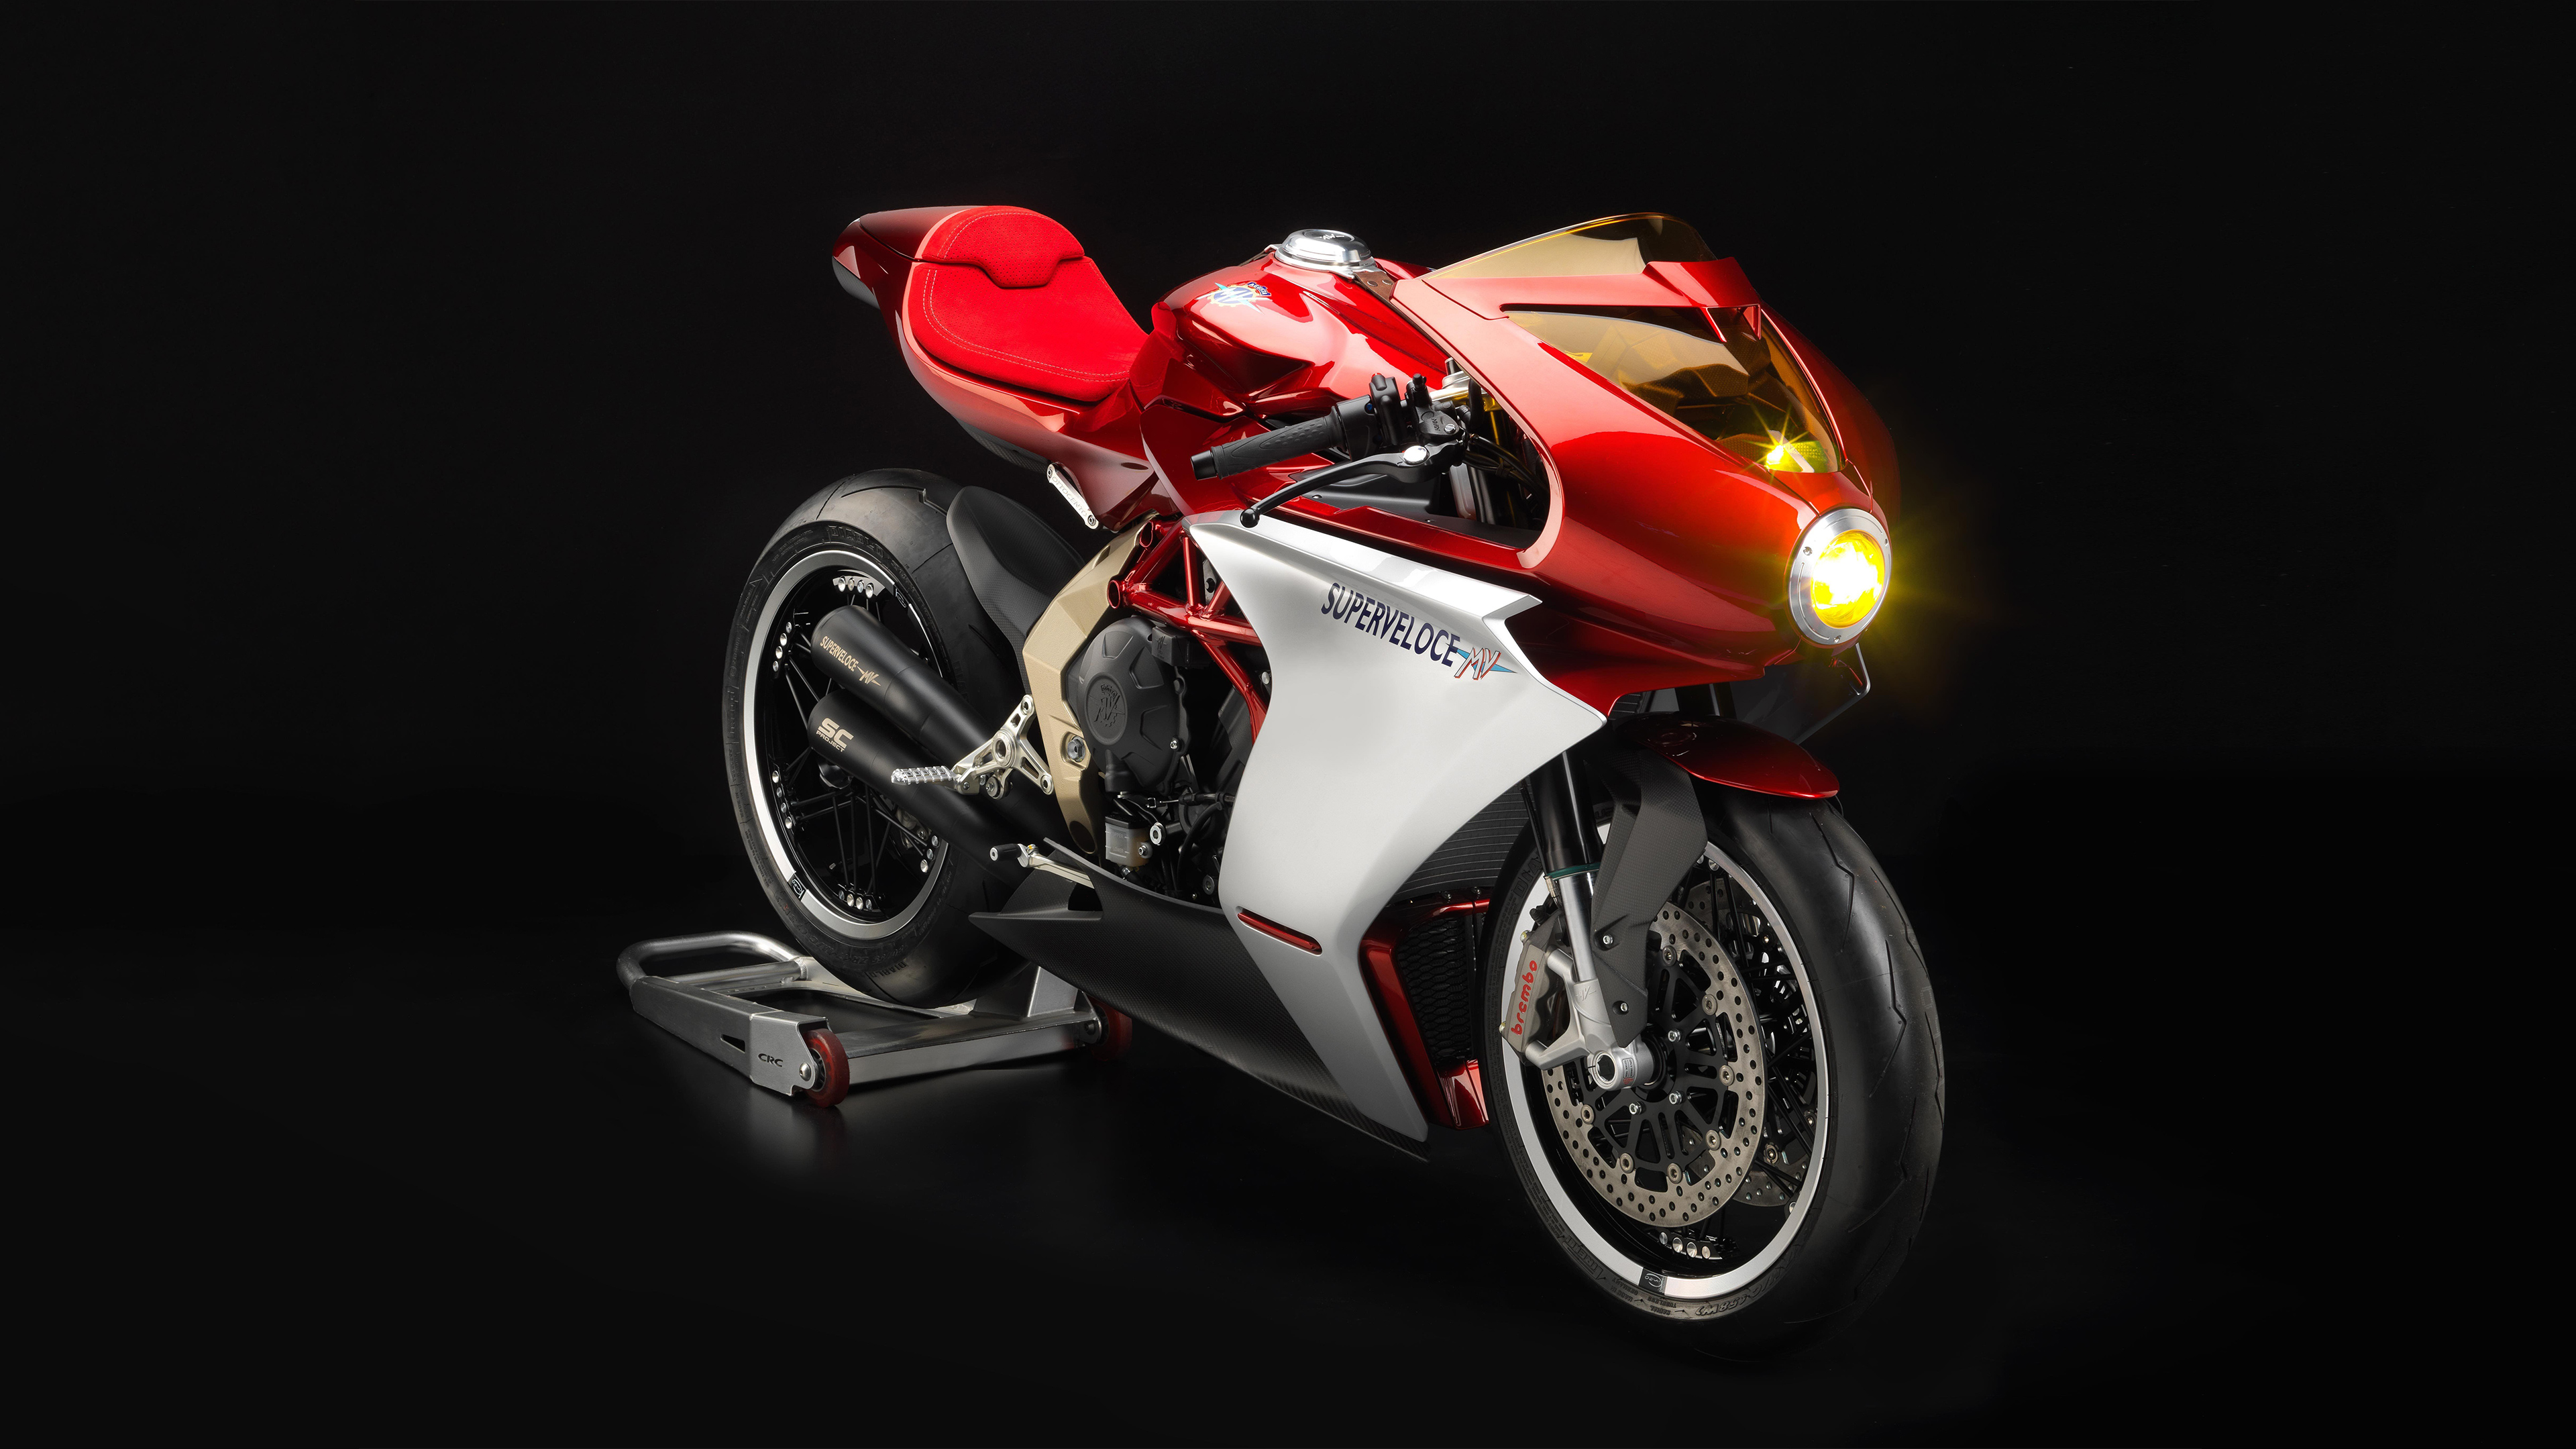 MV Agusta Superveloce 800, HD Bikes, 4k Wallpapers, Images